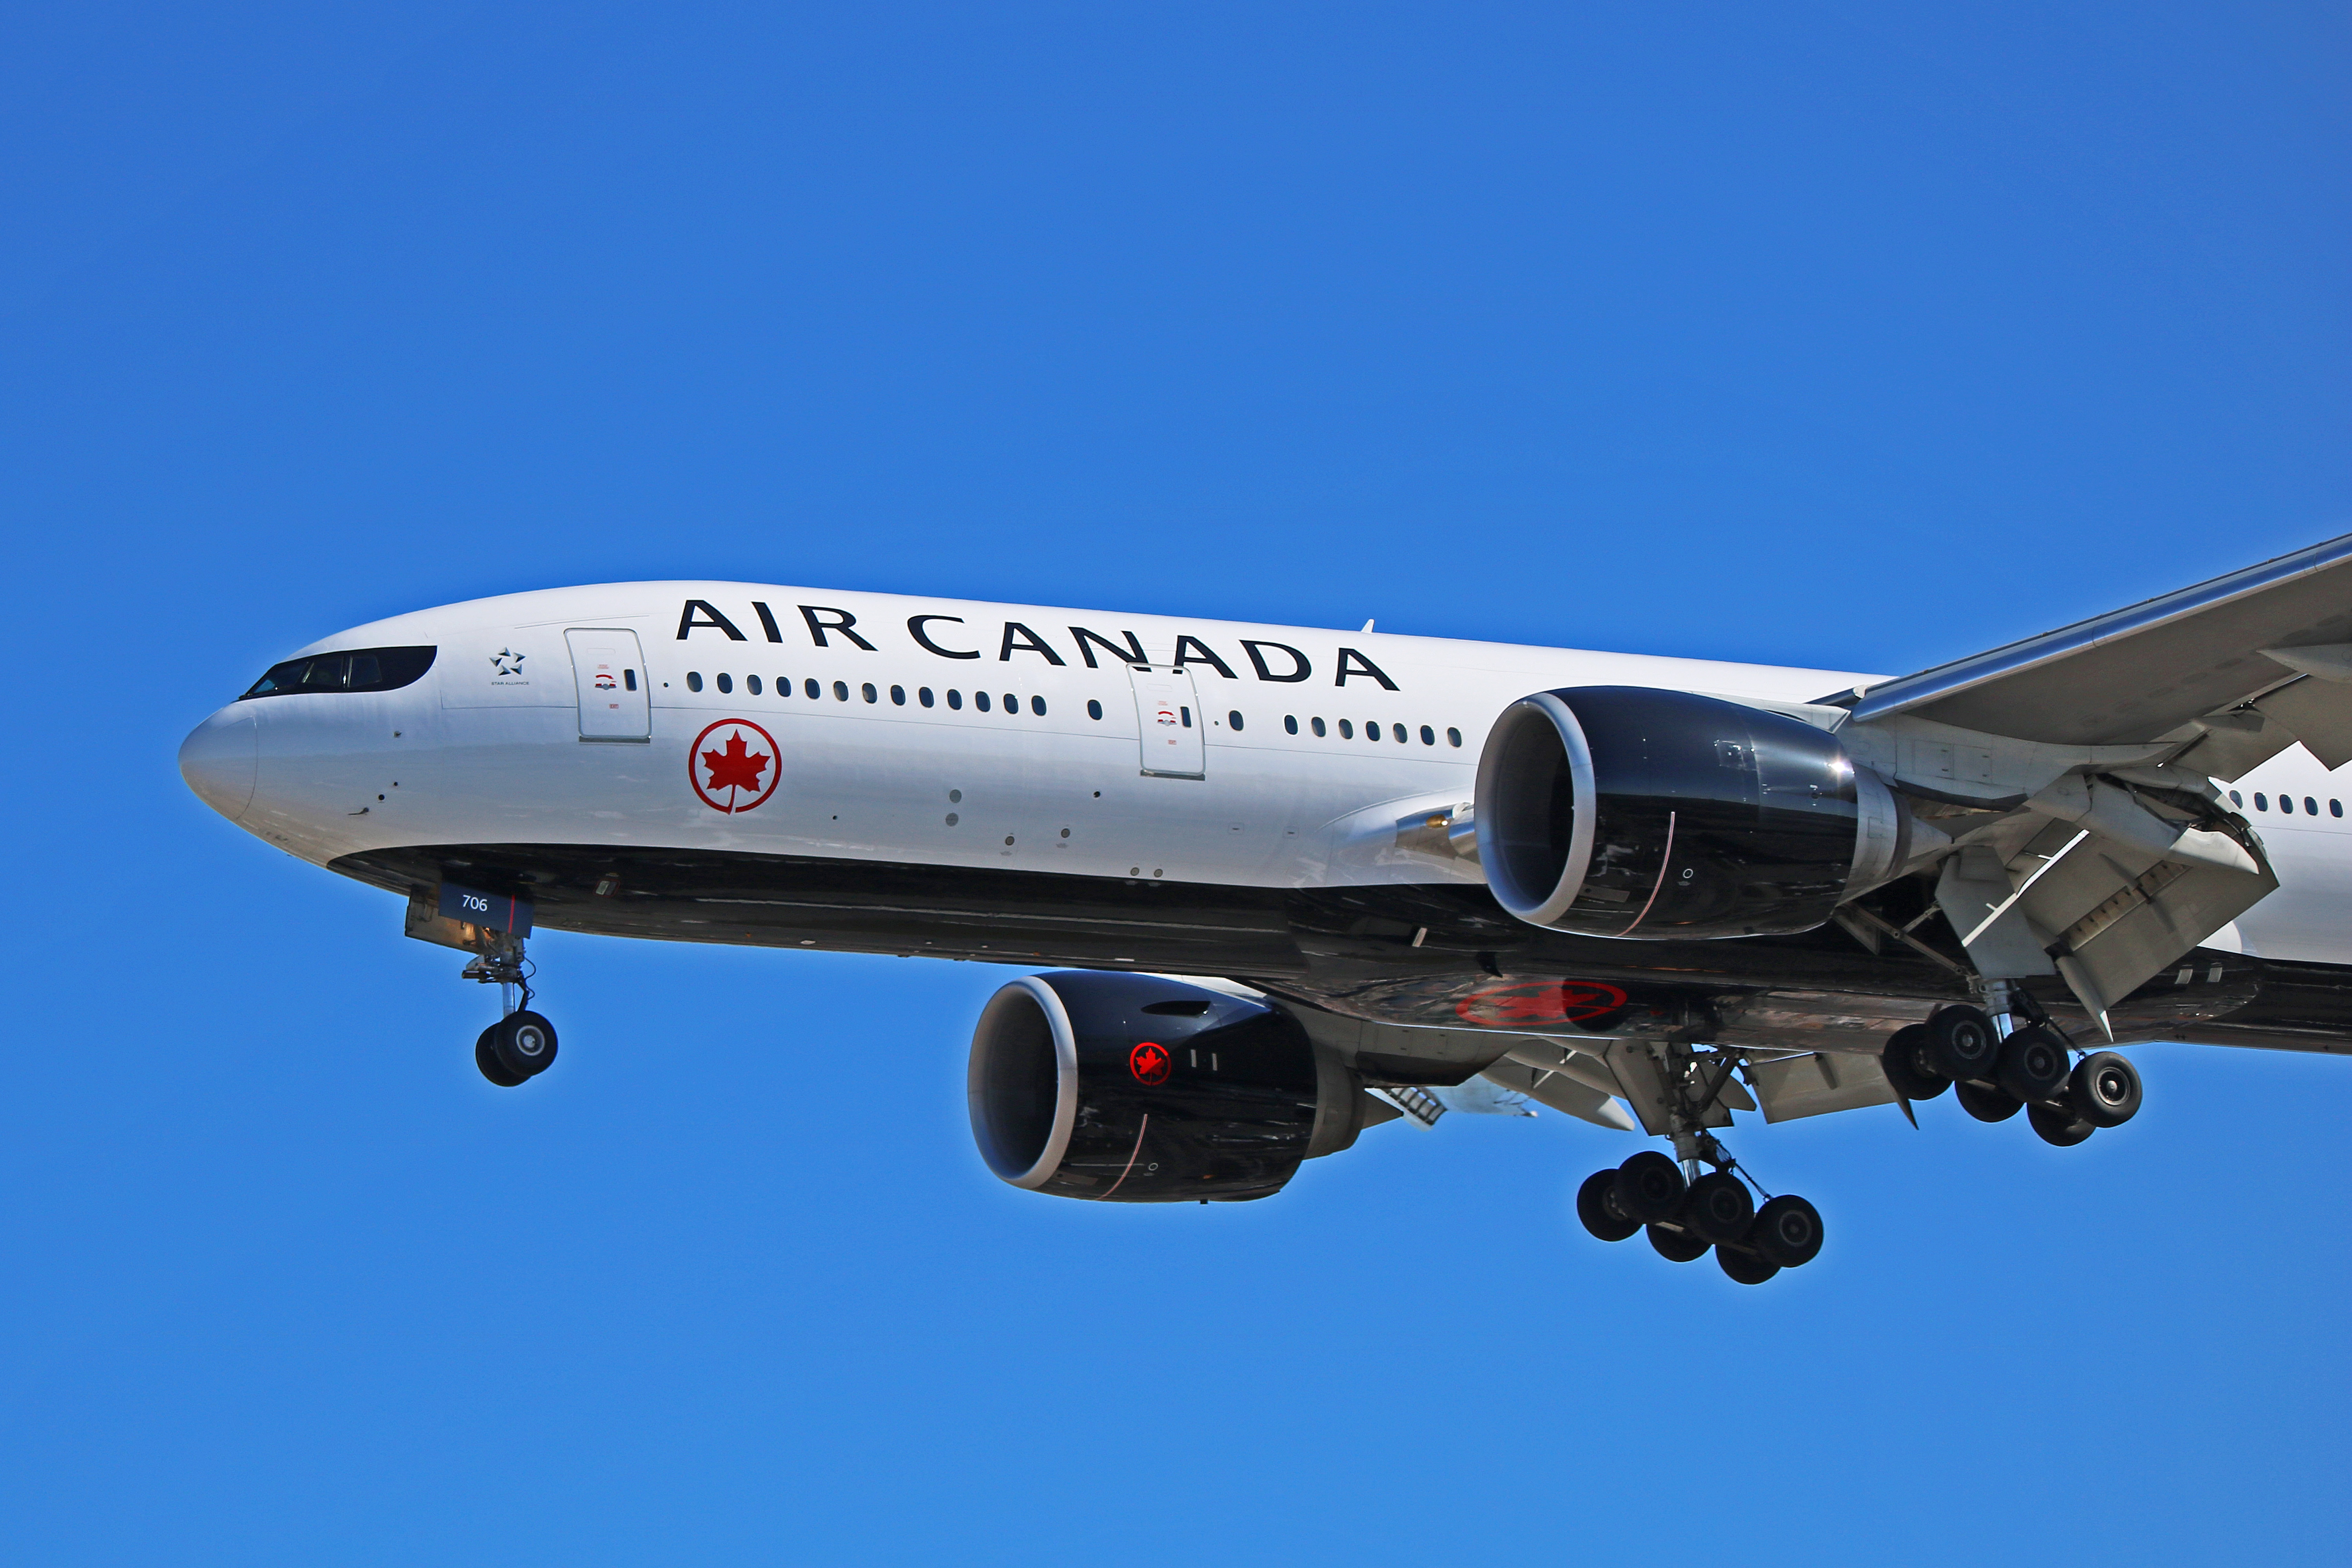 c fnnh air canada boeing 777 200lr with a dangerous past. Black Bedroom Furniture Sets. Home Design Ideas